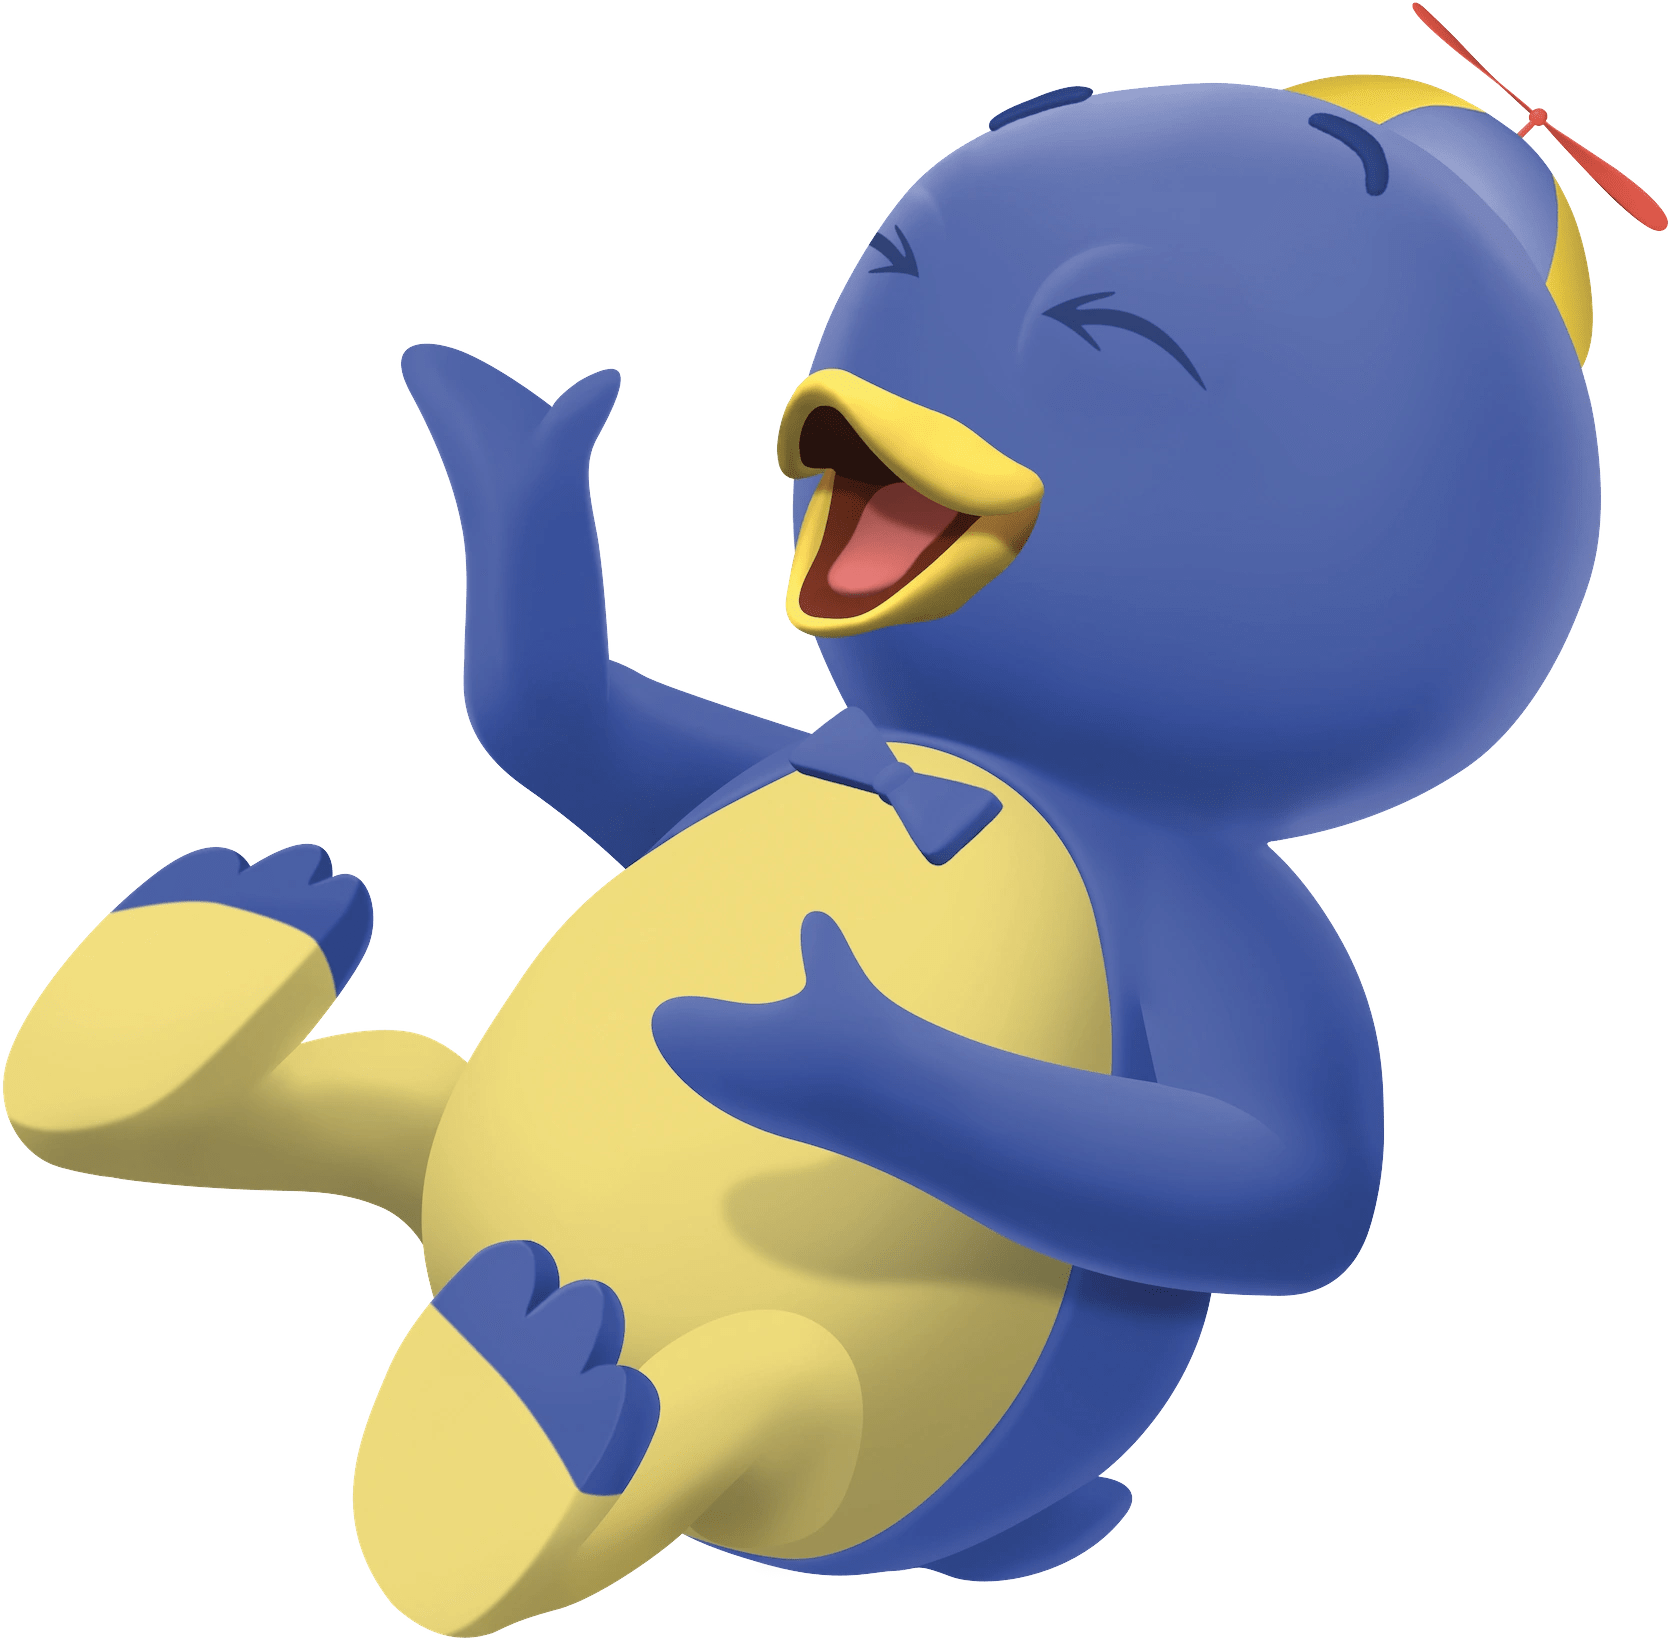 Wallpaper Boy And Girl Love Image The Backyardigans Pablo Laughing Nickelodeon Nick